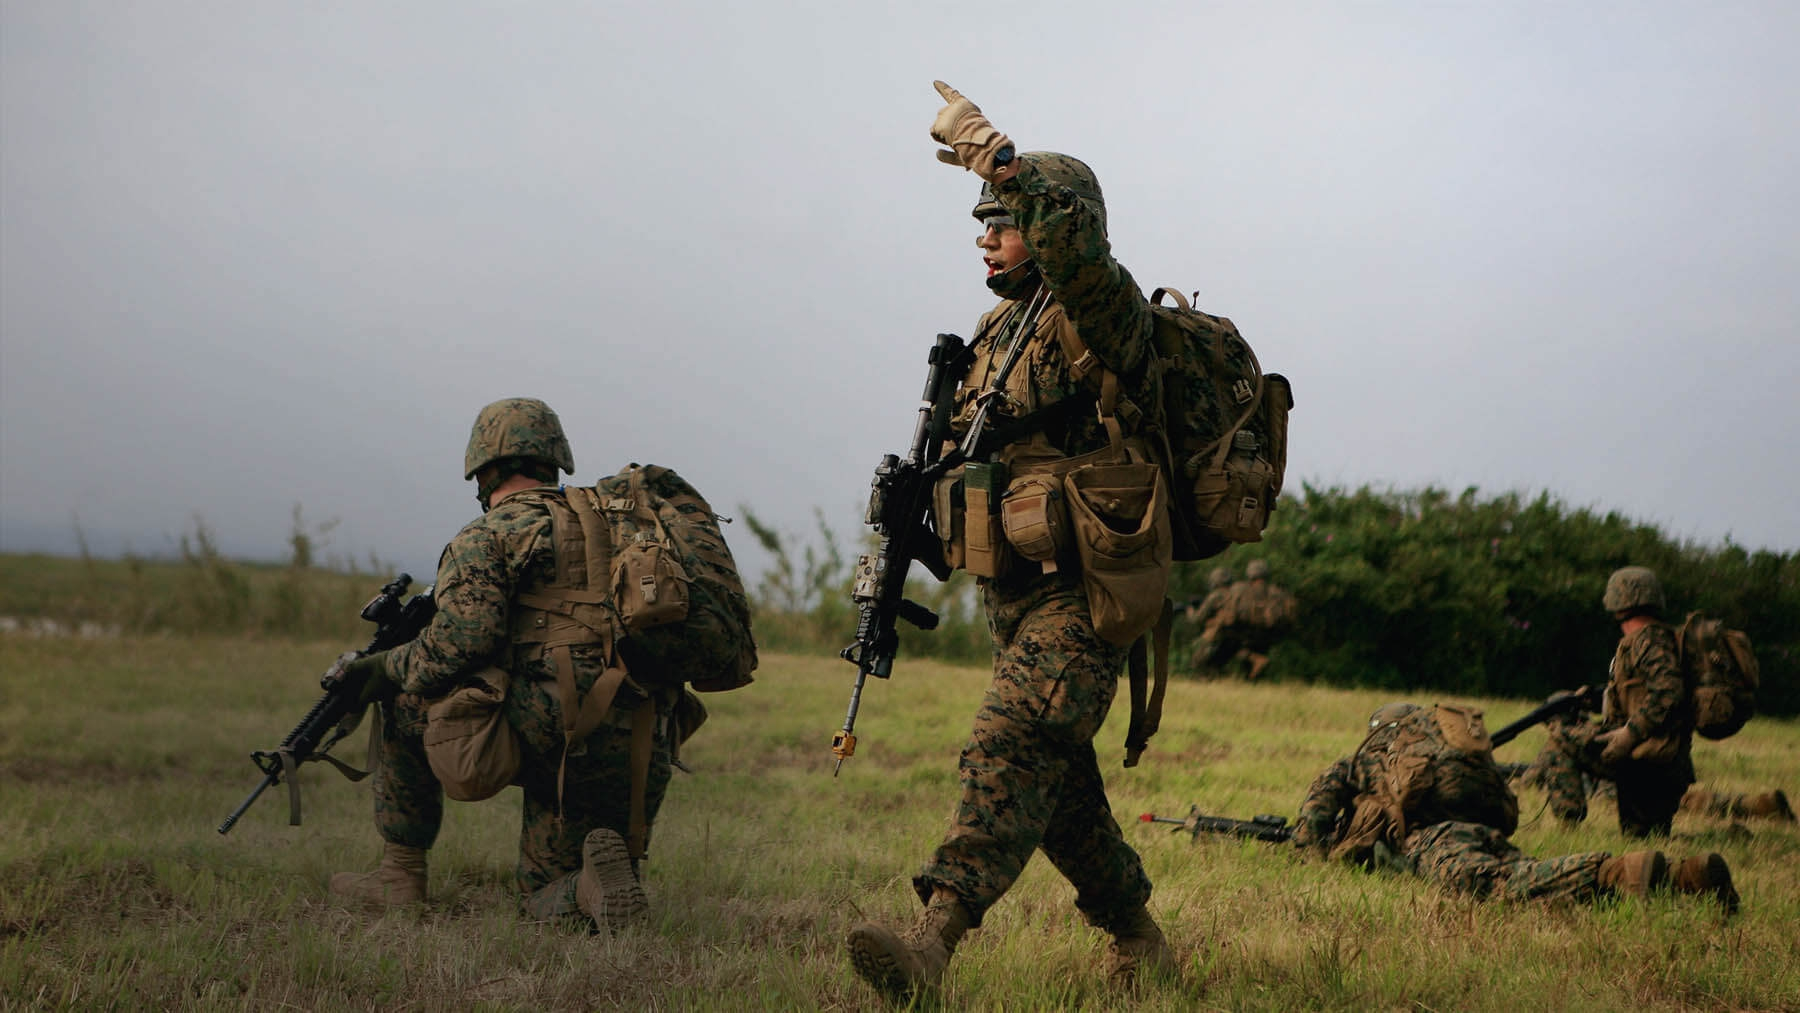 With four Marines in firing position, one Marine stands and gives commands to lead the team forward.